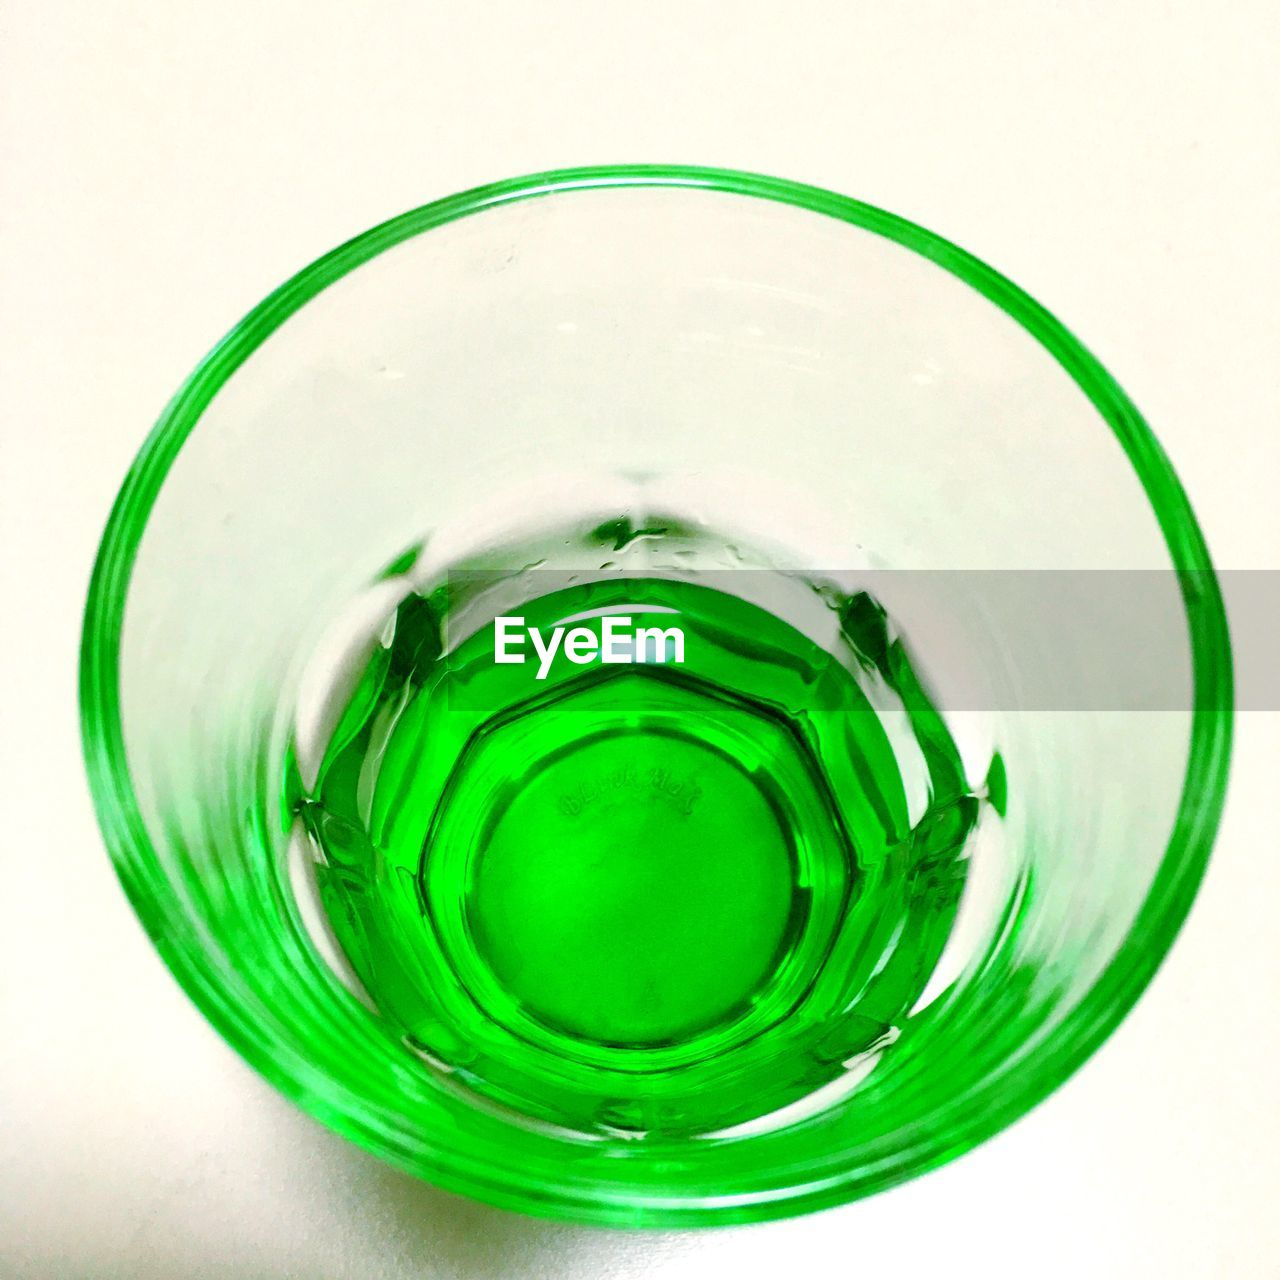 CLOSE-UP OF DRINK ON GLASS